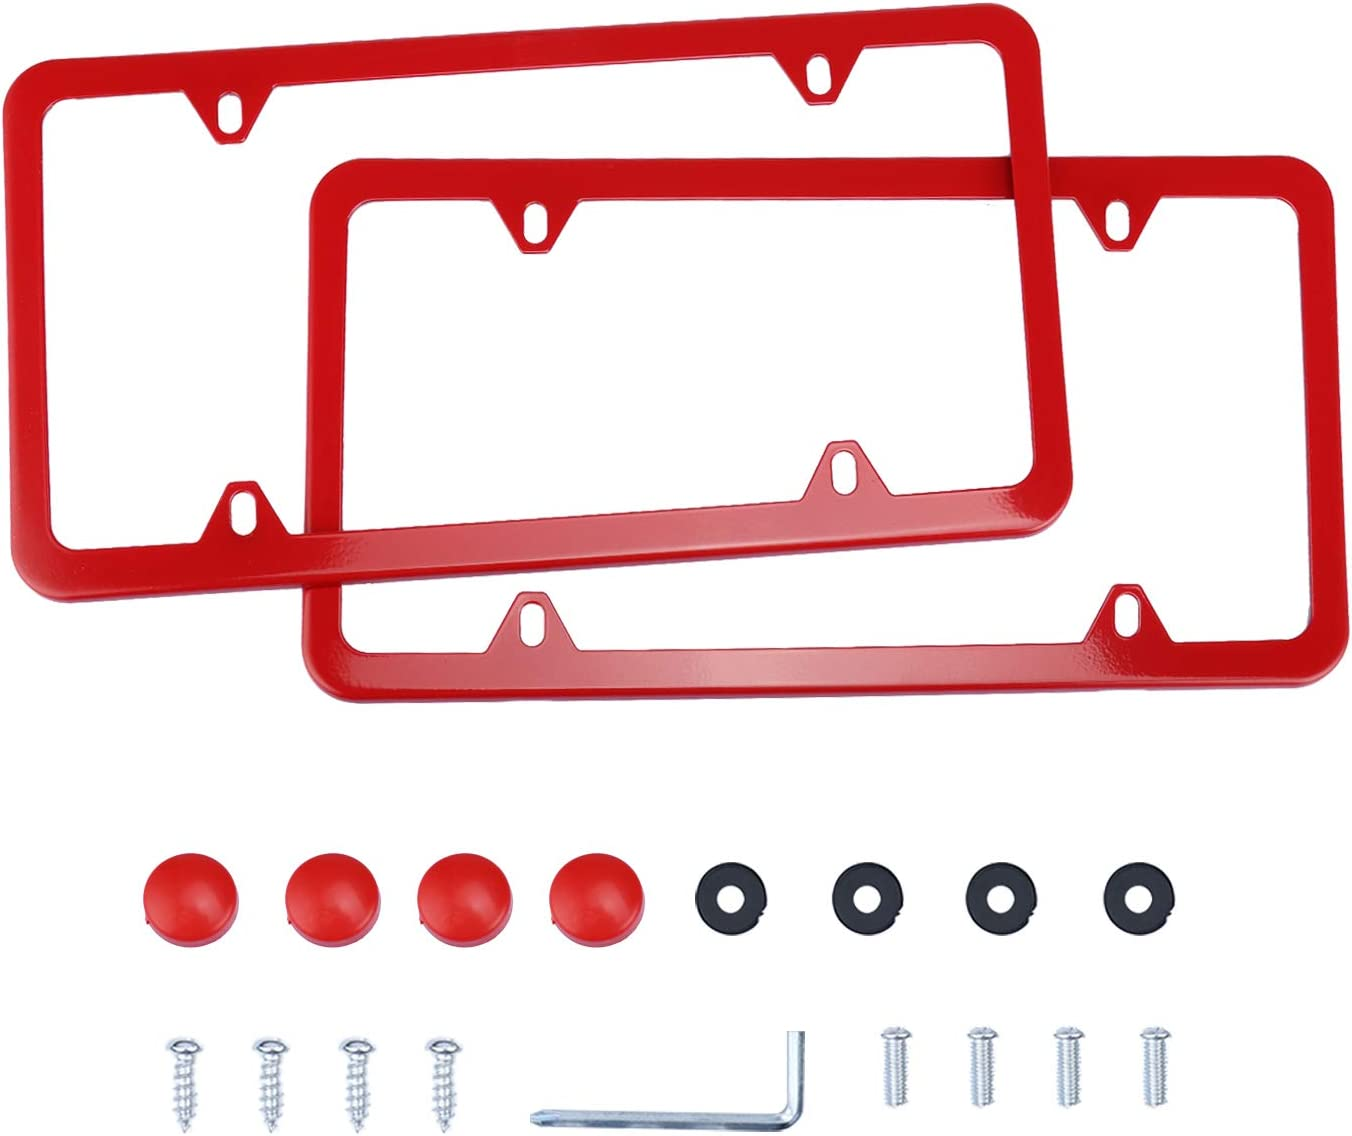 LivTee 4 Holes Stainless Steel License Plate Frames, 2 PCS Car Licence Plate Covers Slim Design with Bolts Washer Caps for US Vehicles, Red